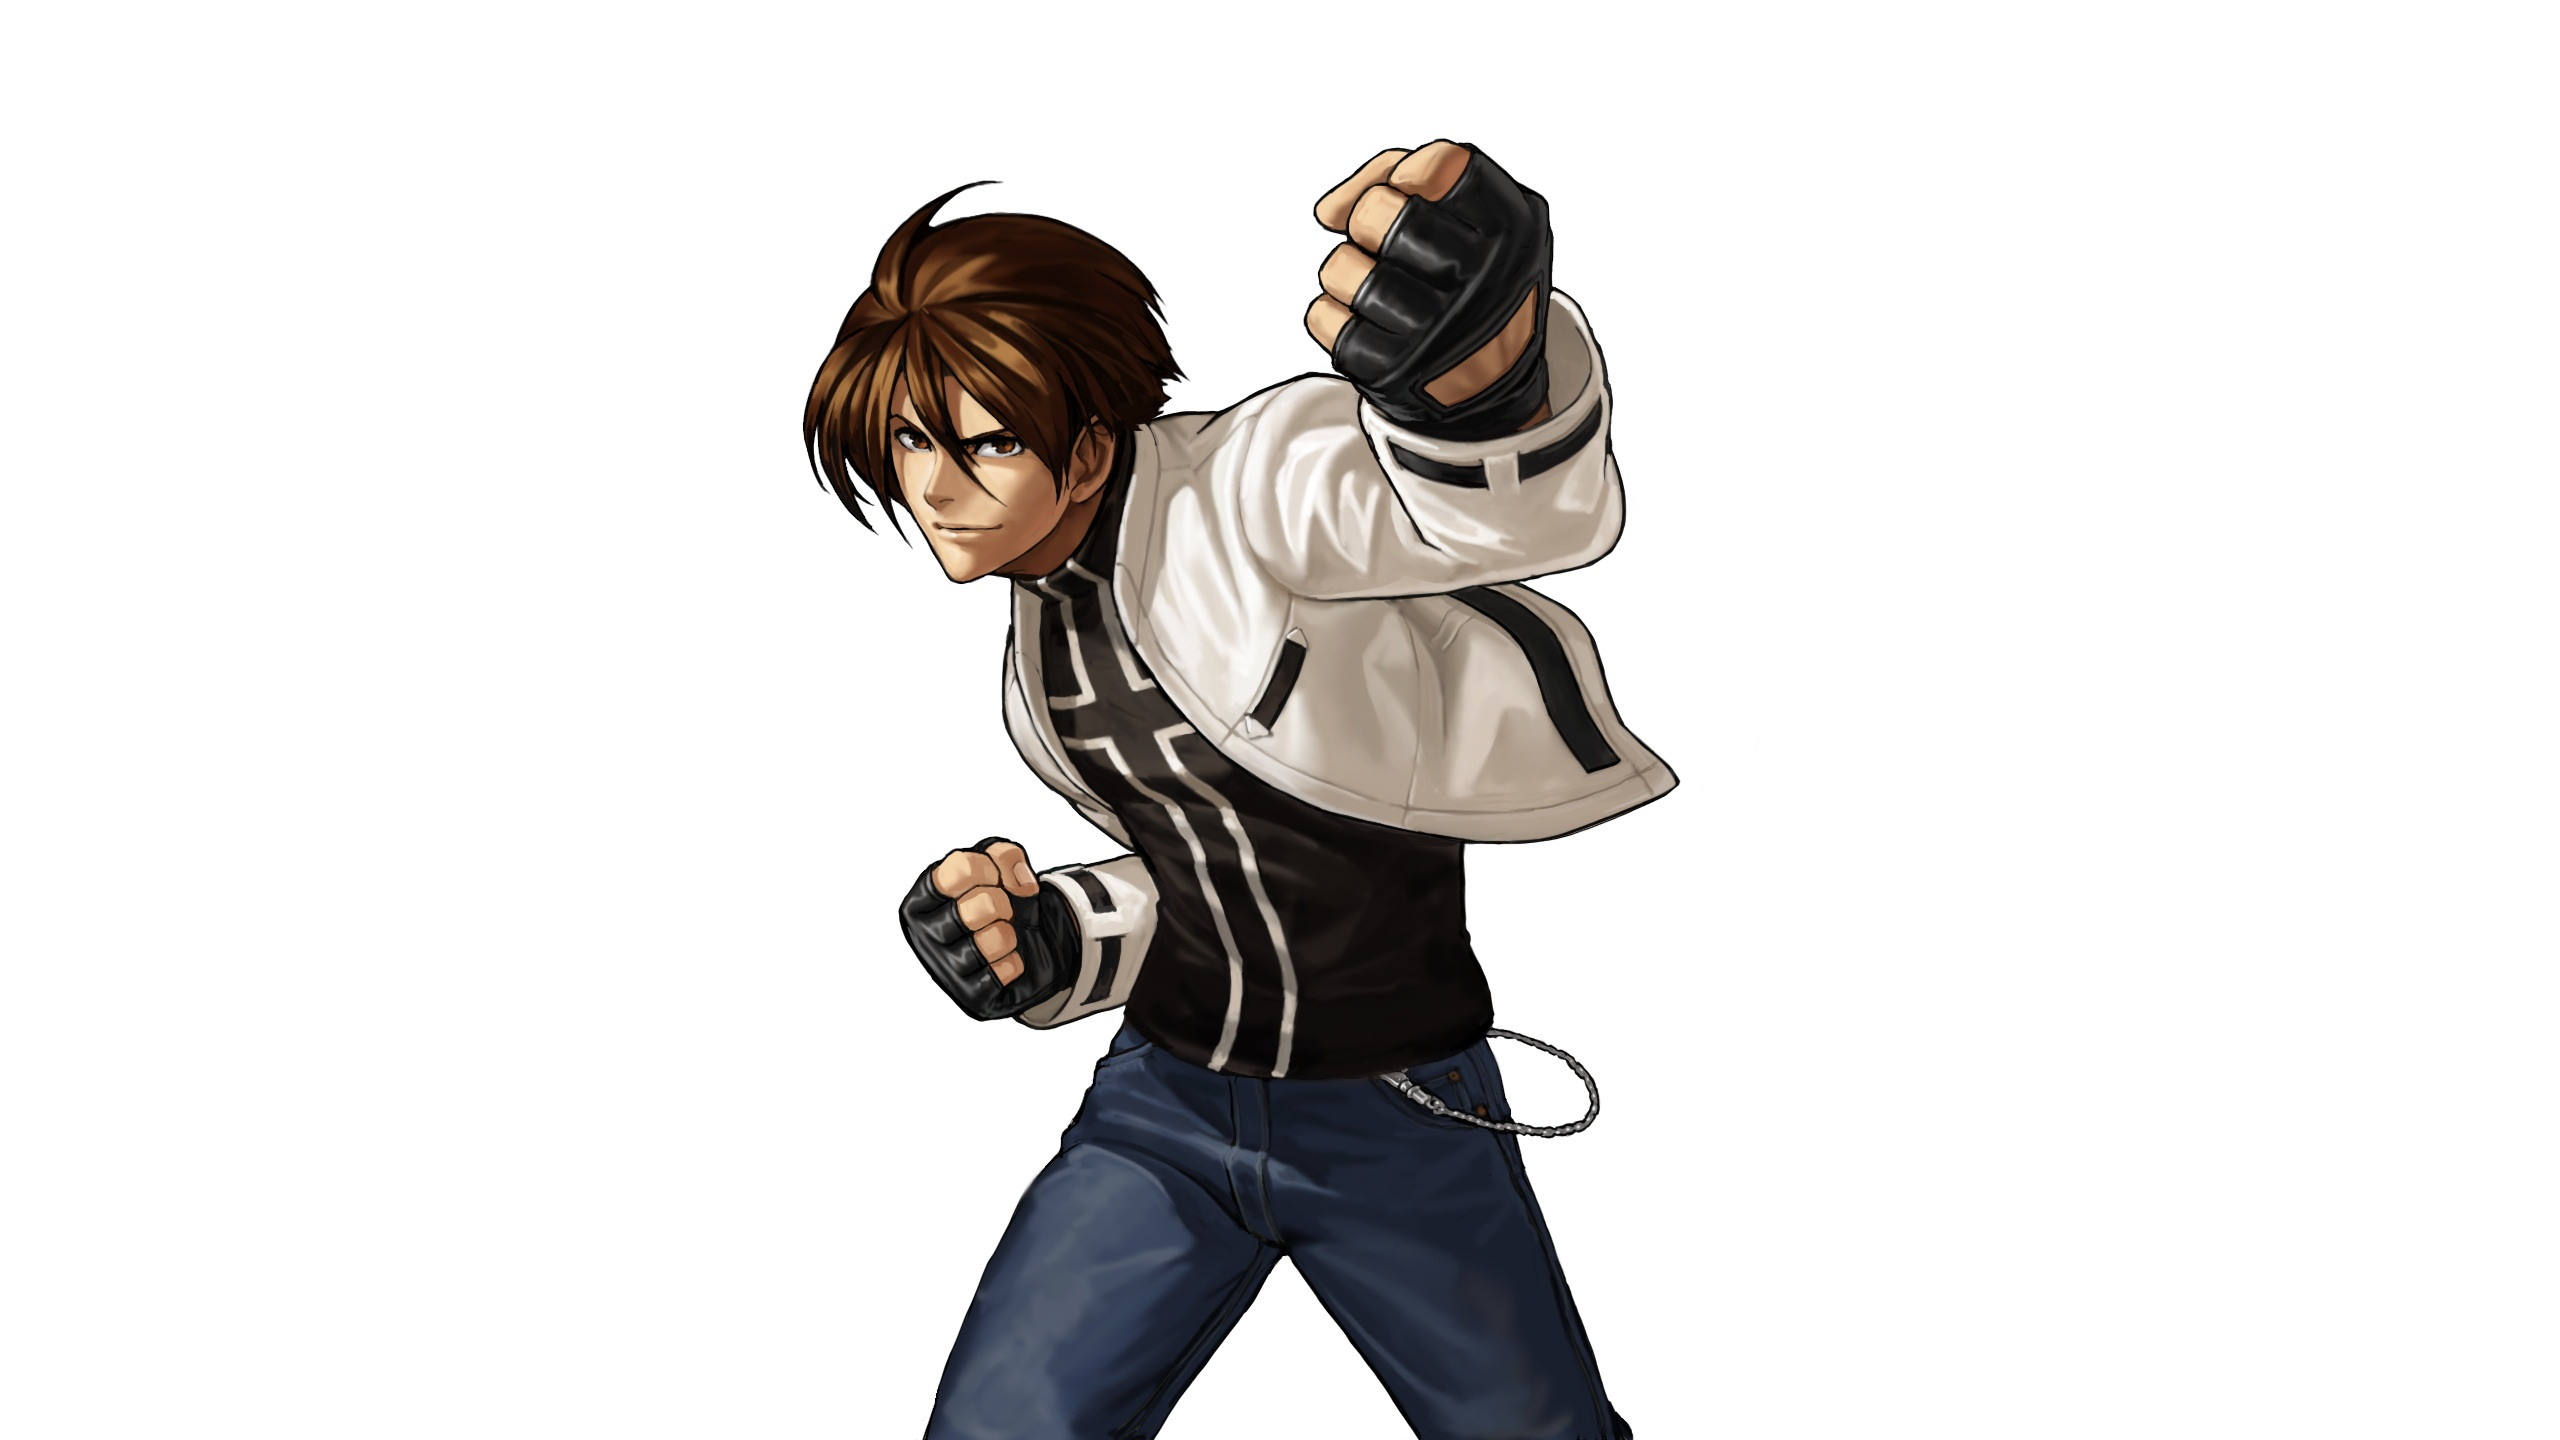 King Of Fighters Xiii Character Win Portraits